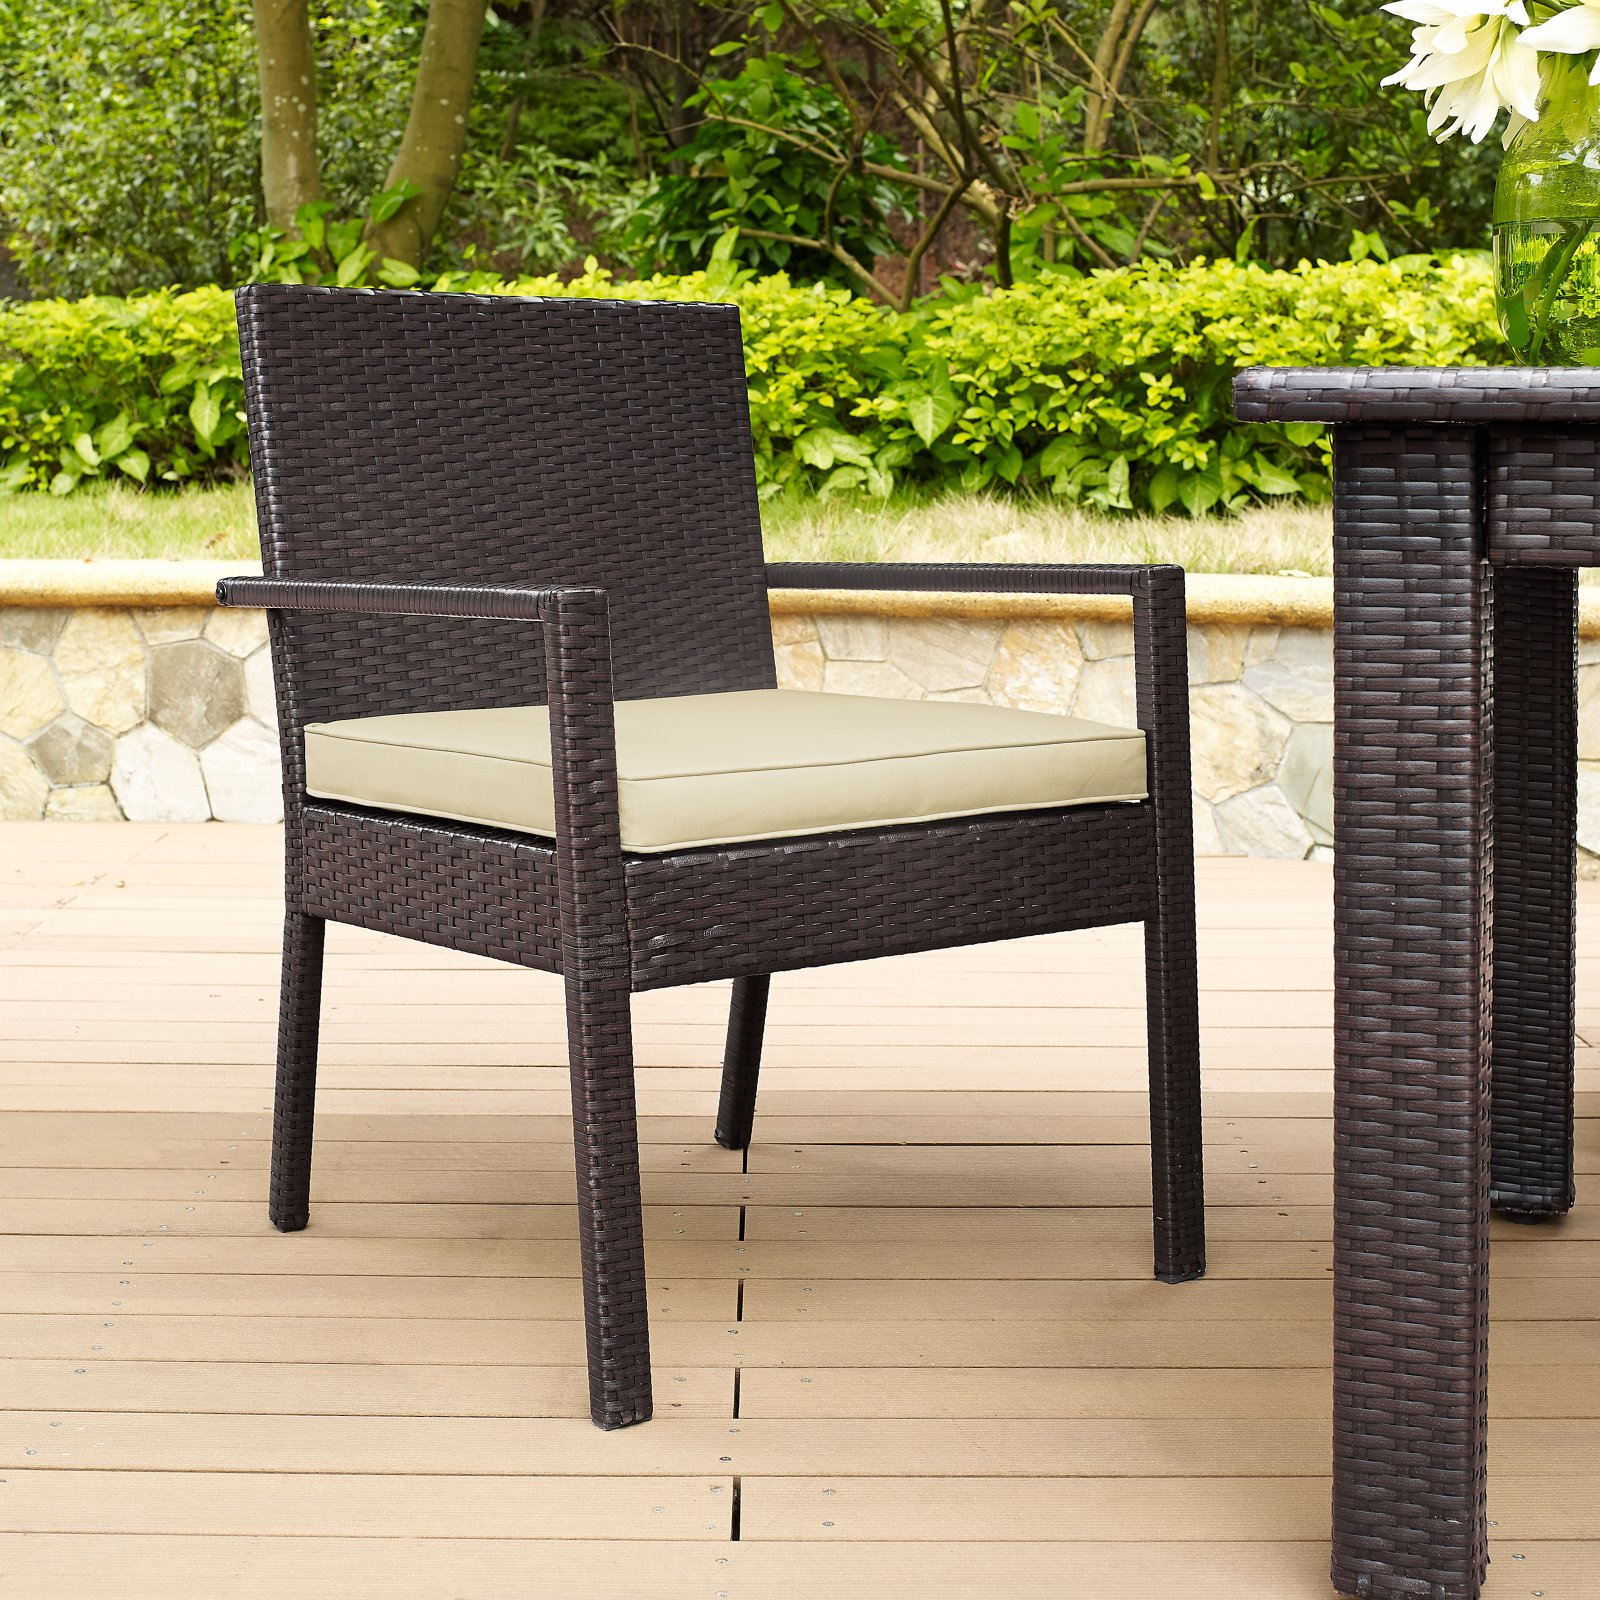 Crosley Palm Harbor Outdoor Wicker Dining Chair, Set of 2